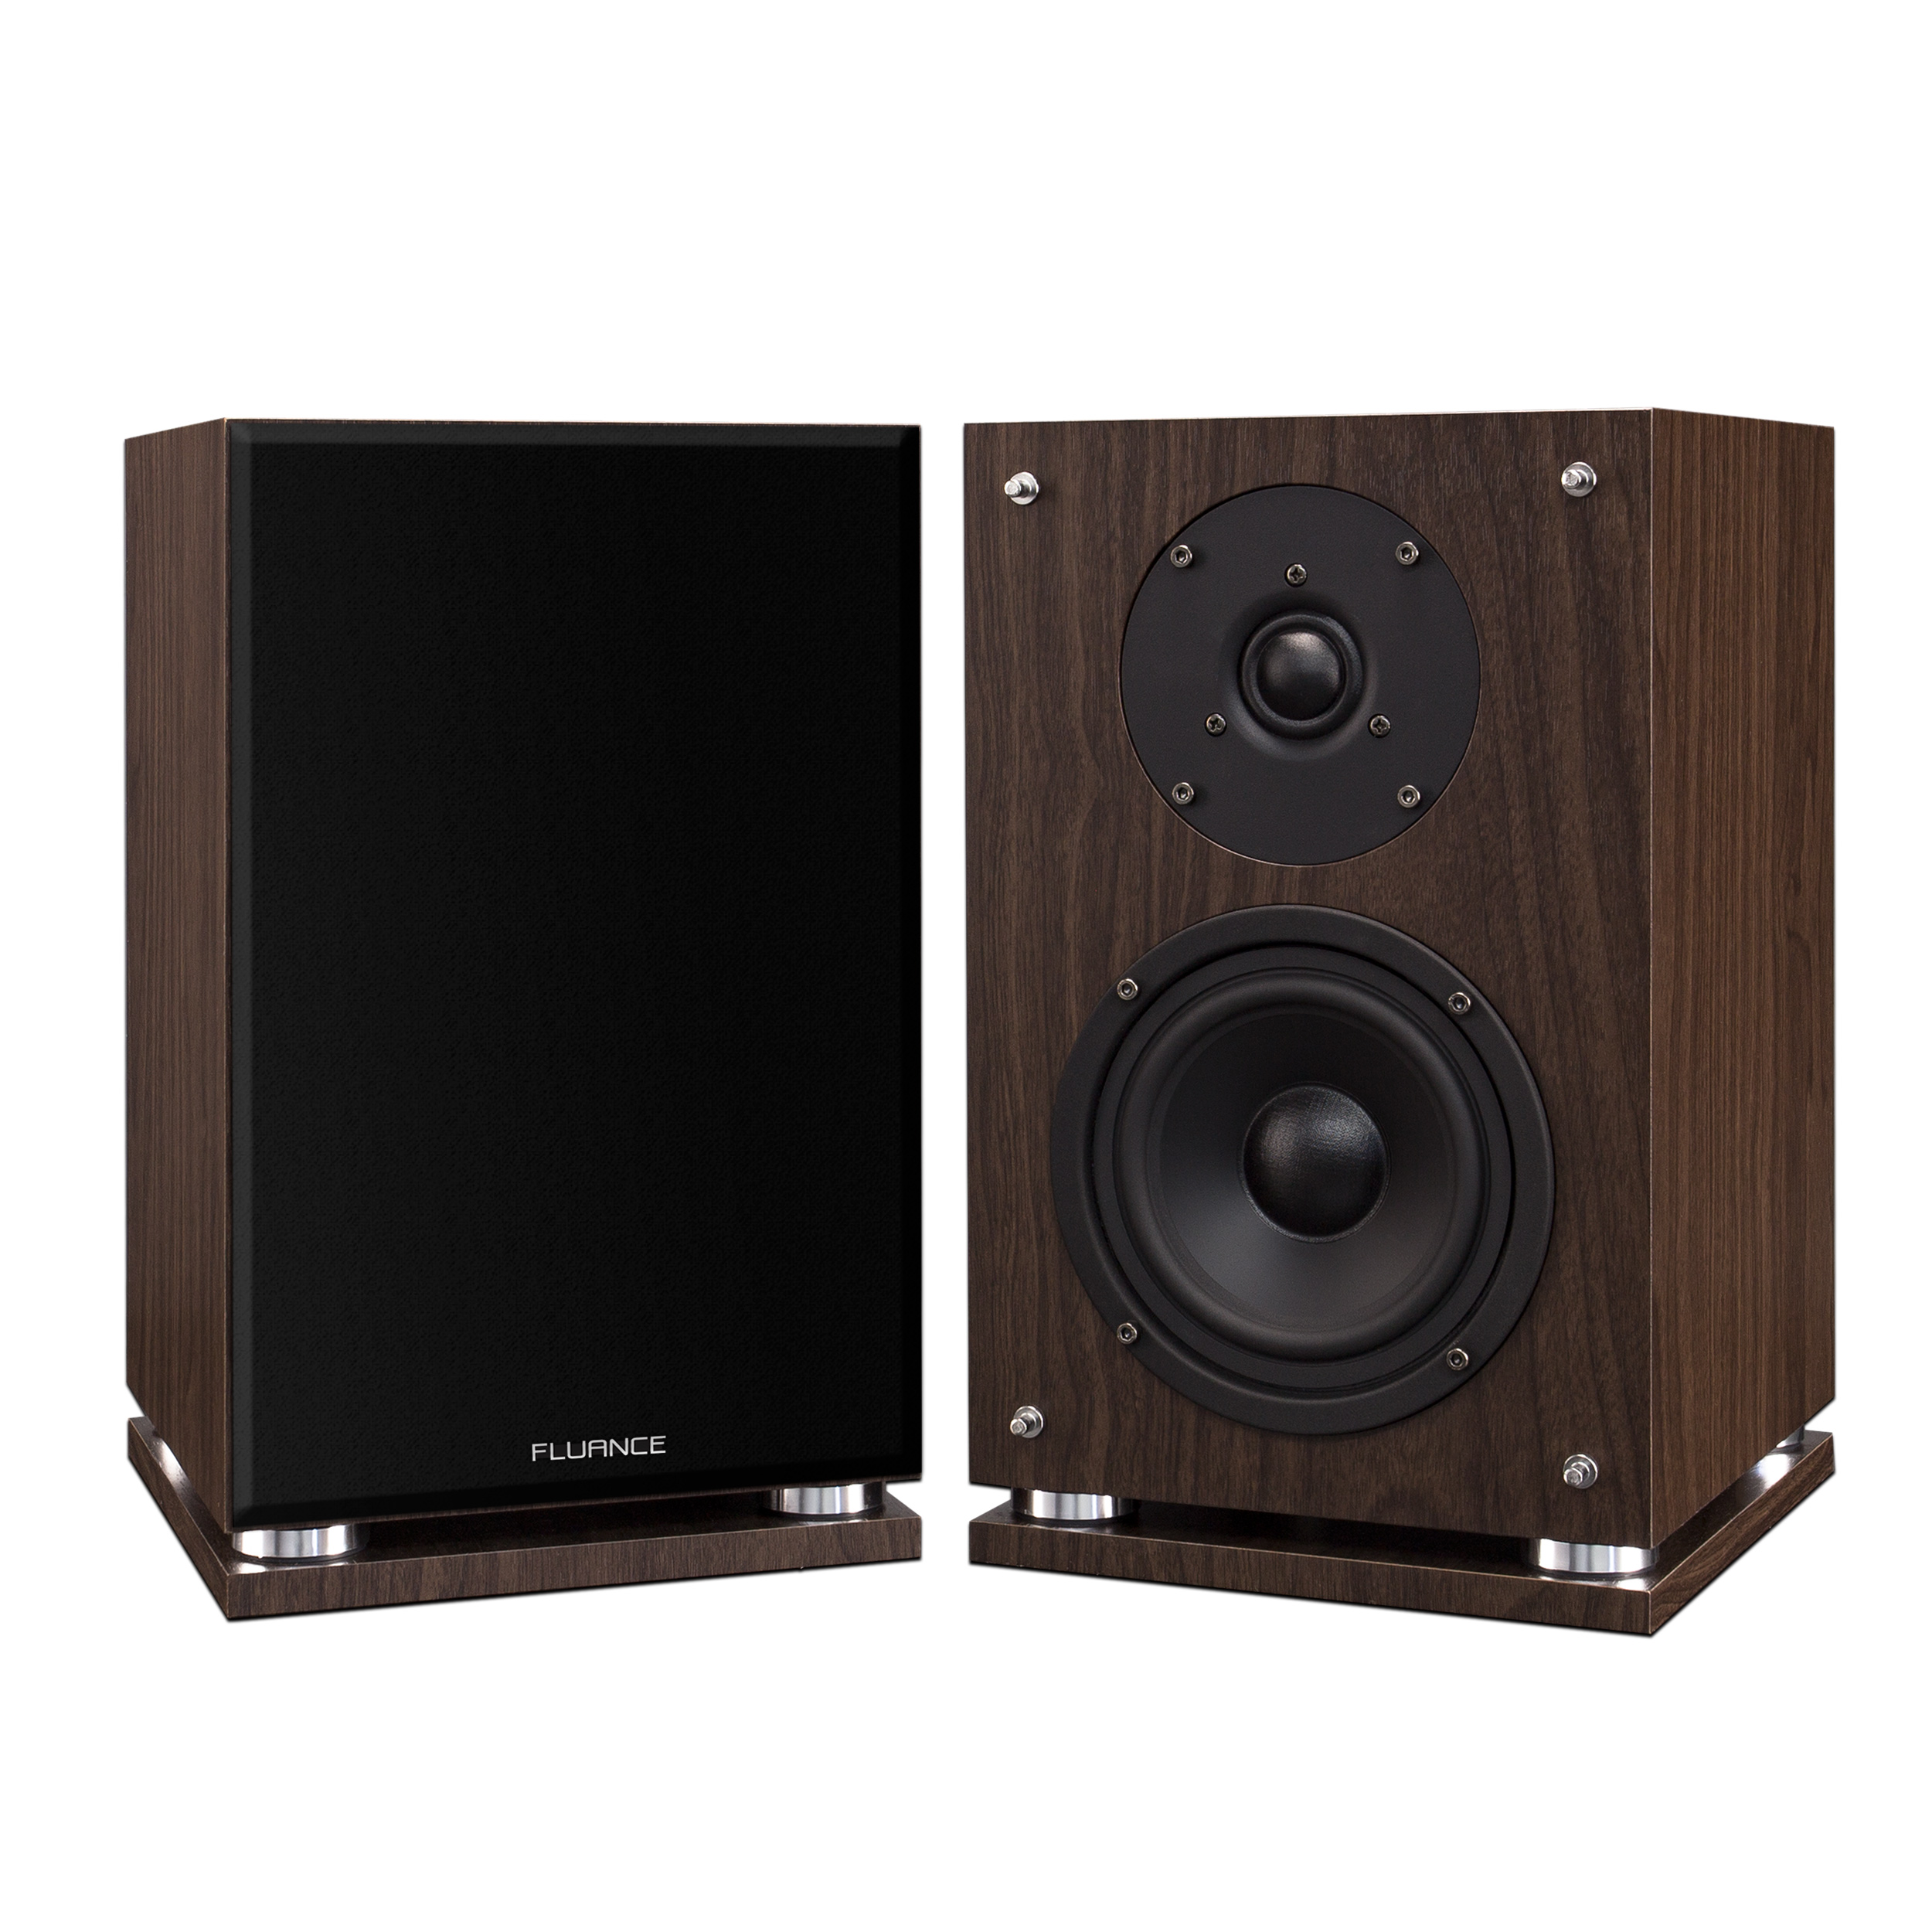 Fluance SX6W High Definition Two-Way Bookshelf Loudspeakers - Natural Walnut